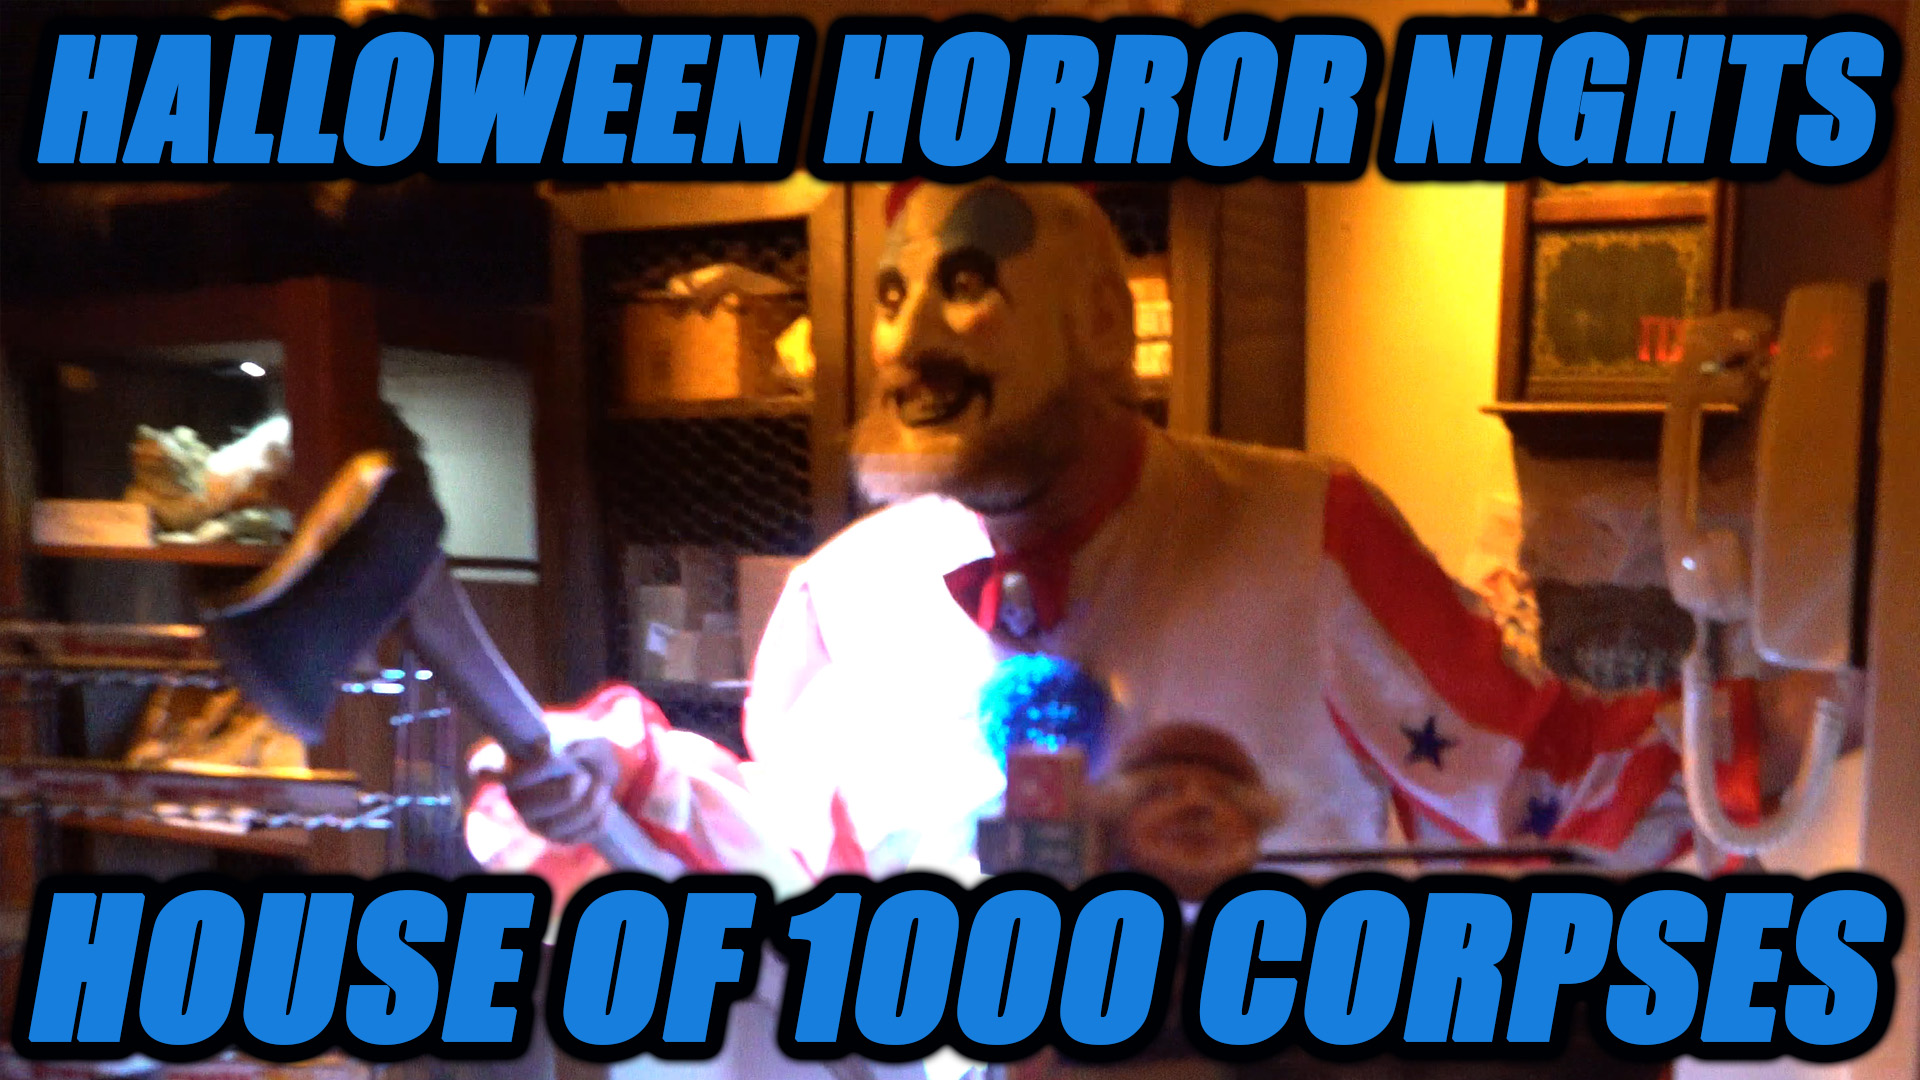 House Of 1000 Corpses Halloween Horror Nights Attraction Faction